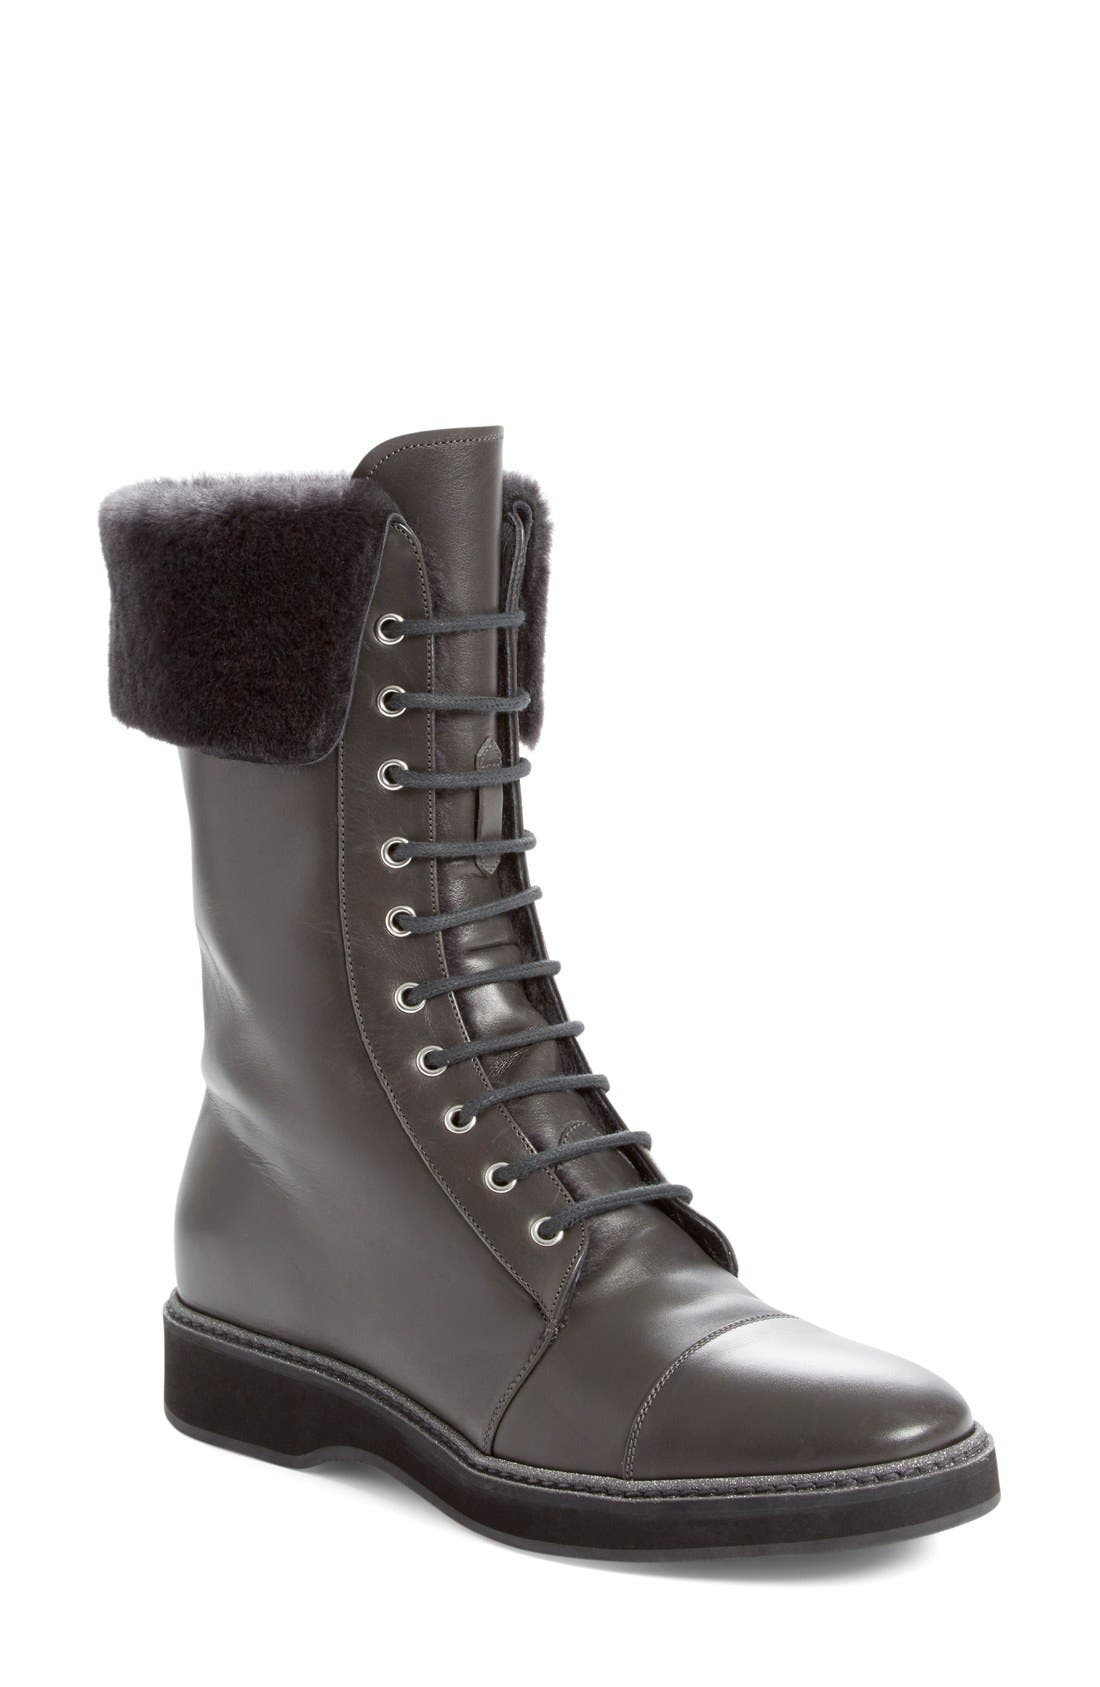 FABIANA FILIPPI Boots view for sale latest collections sale online discount cheapest price buy cheap professional zOLkoOI